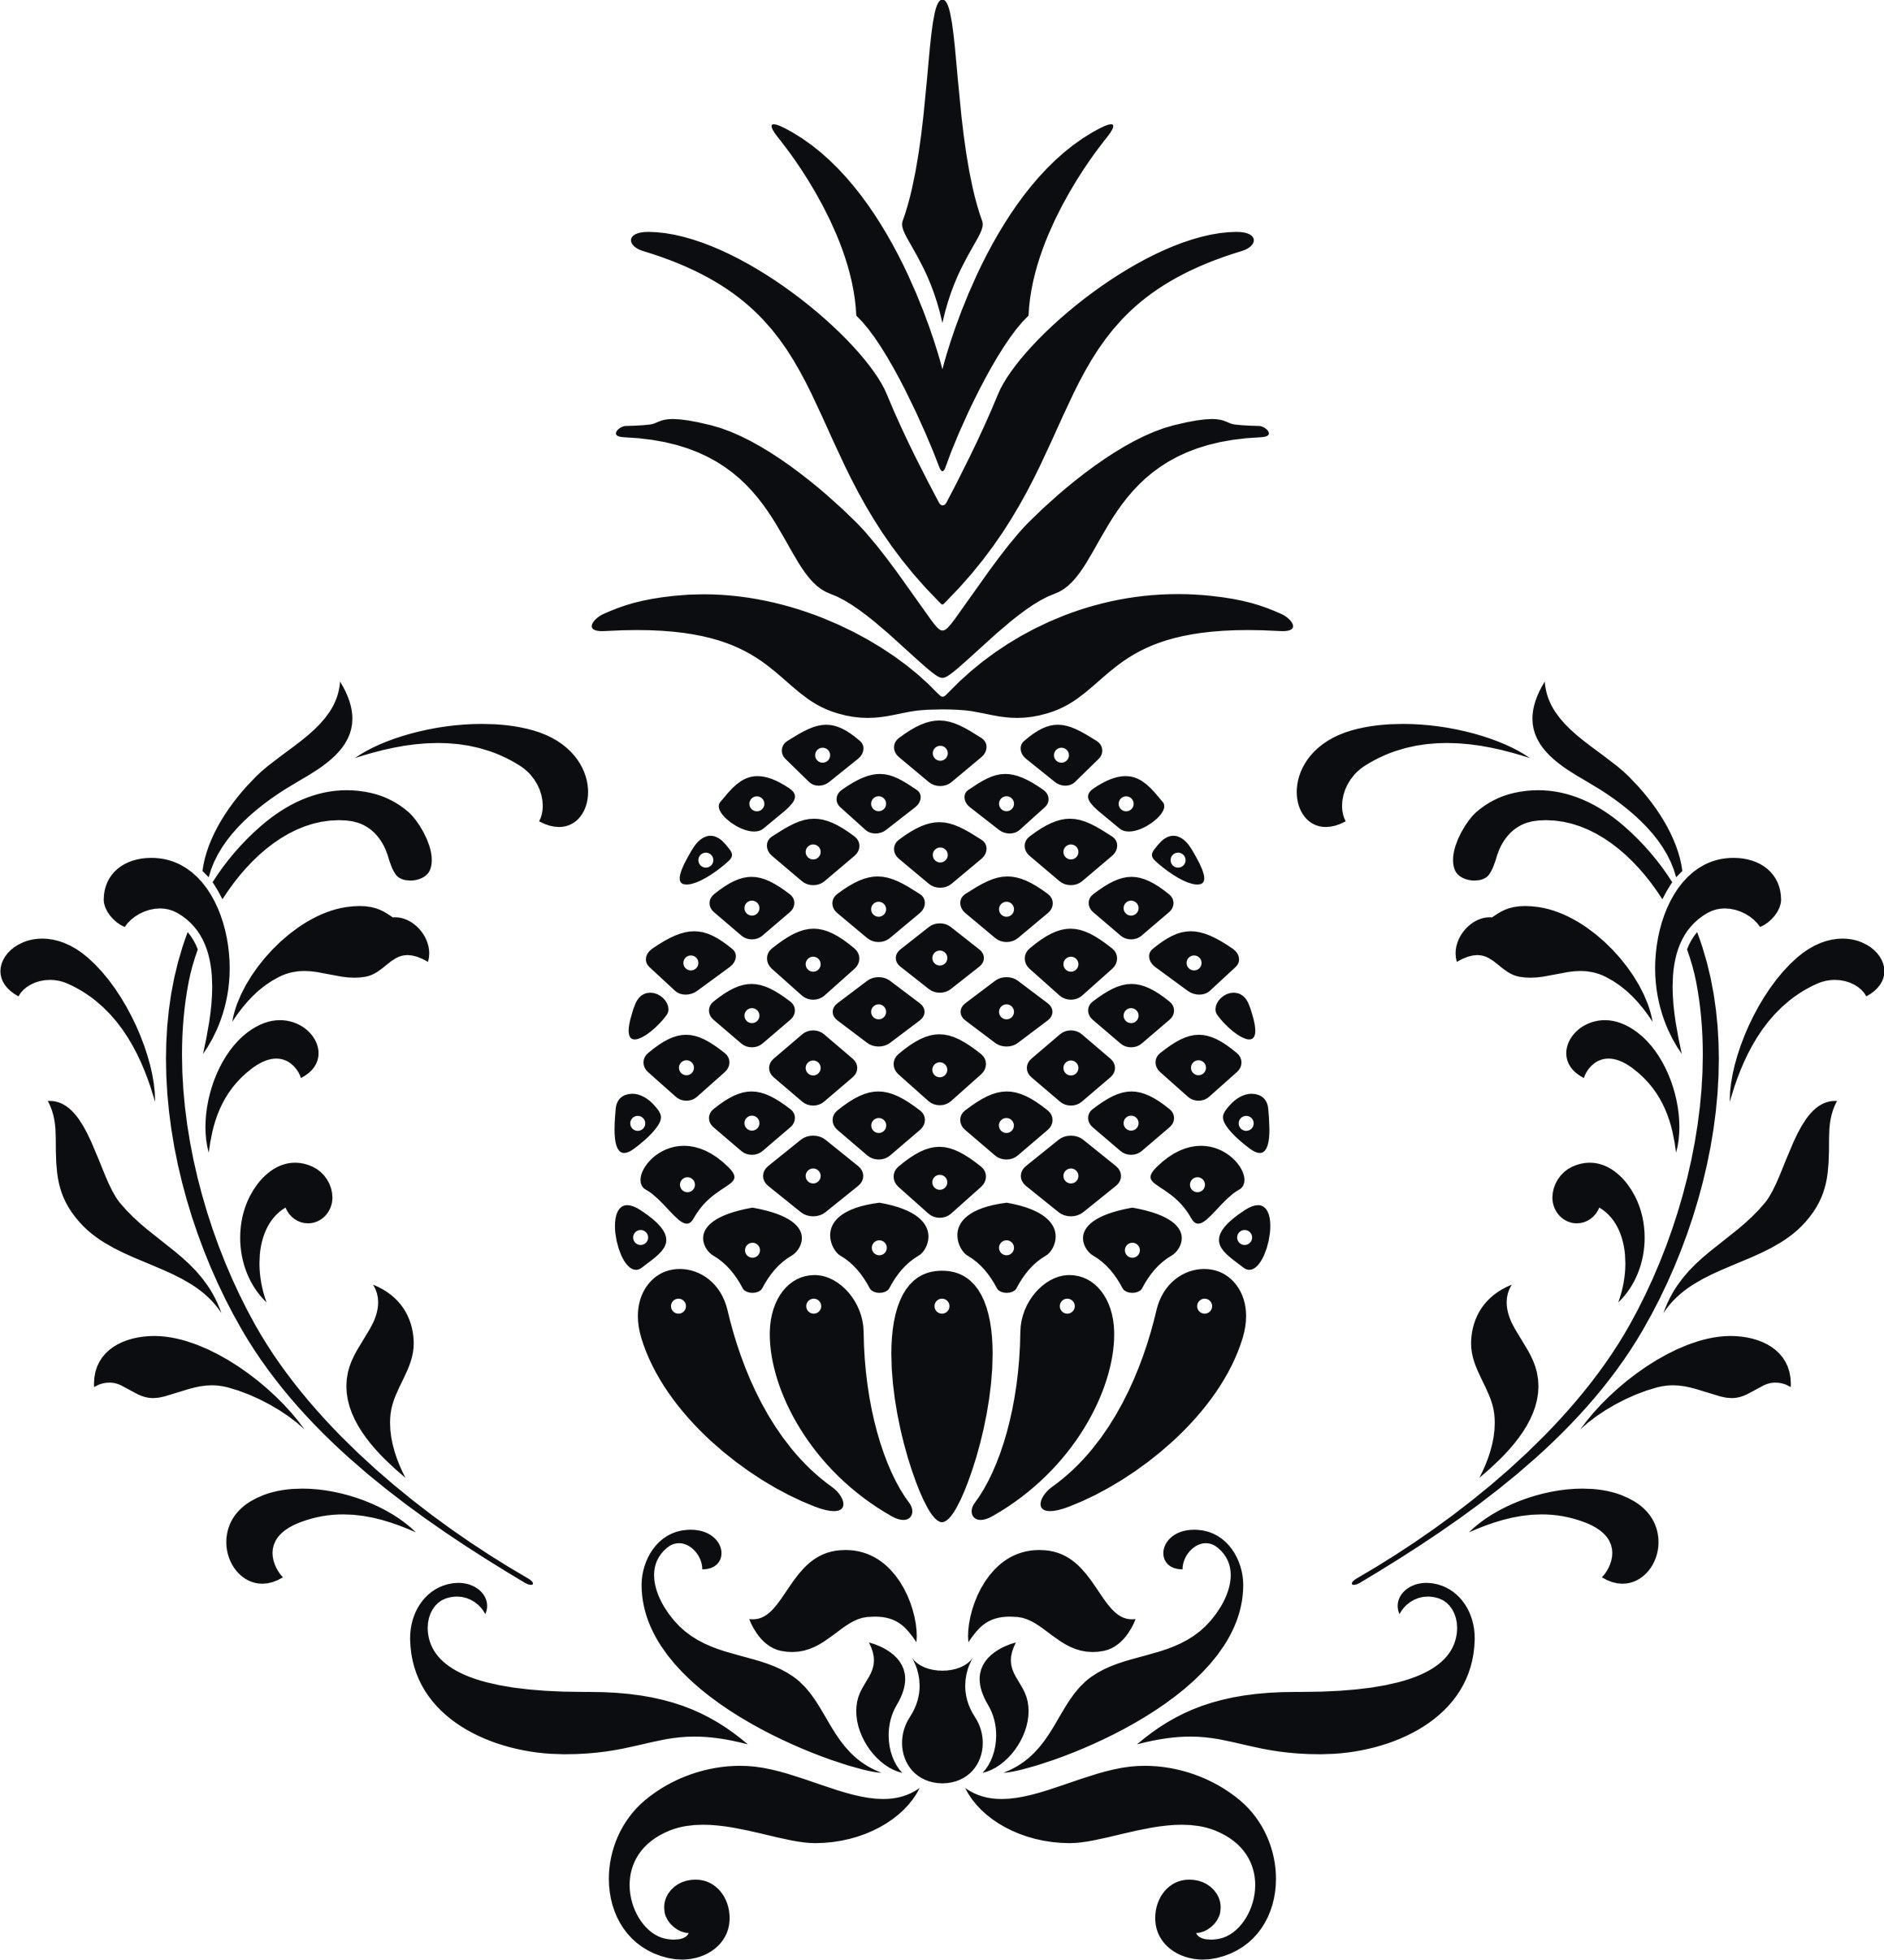 Pineapple clipart fancy. Hospitality clip art panda